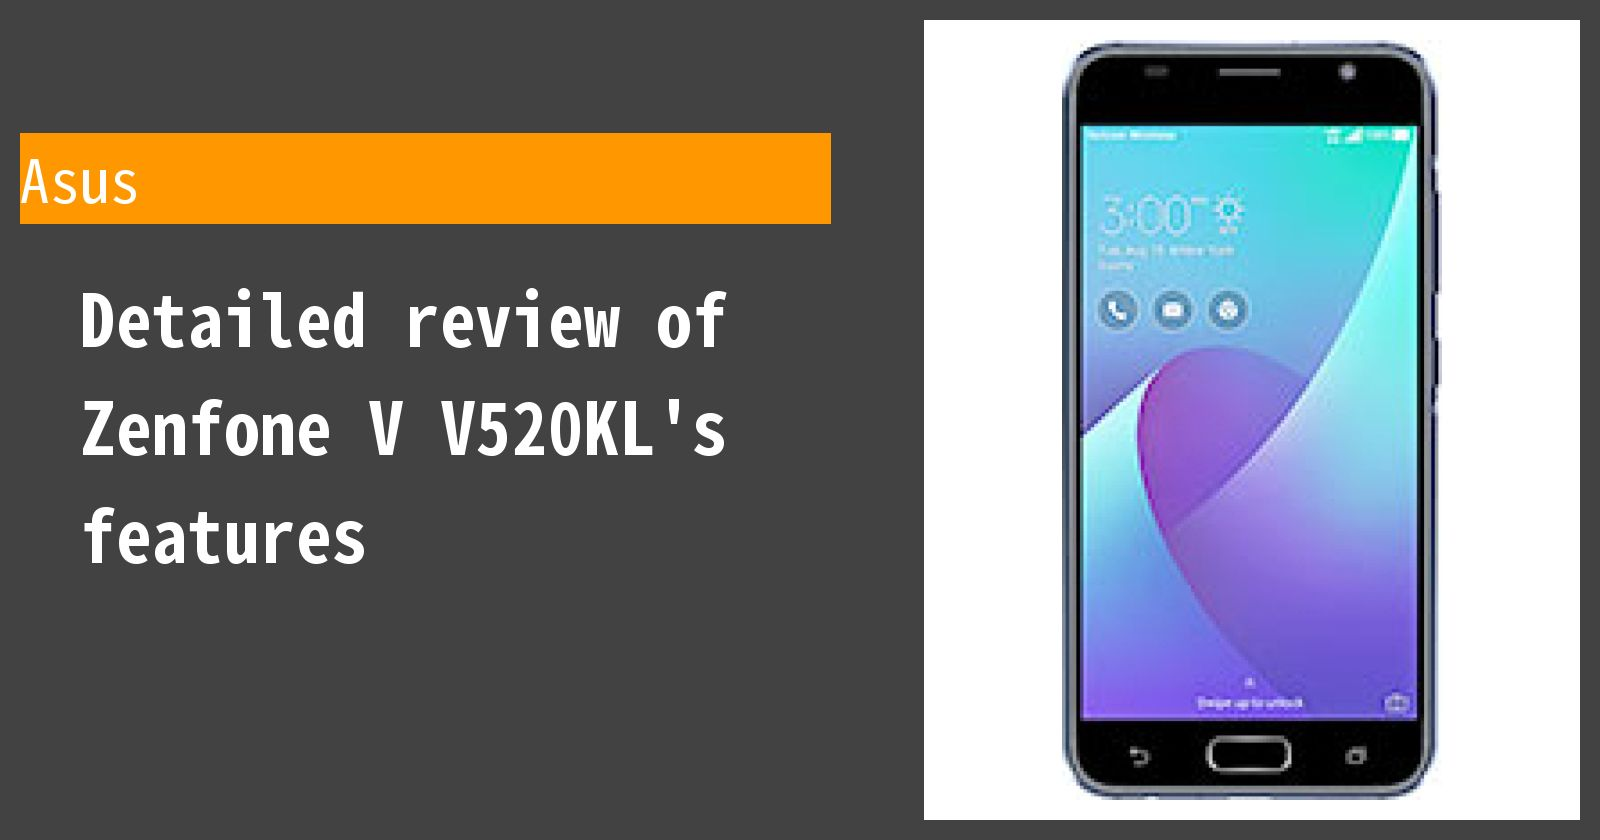 Detailed review of Zenfone V V520KL's features